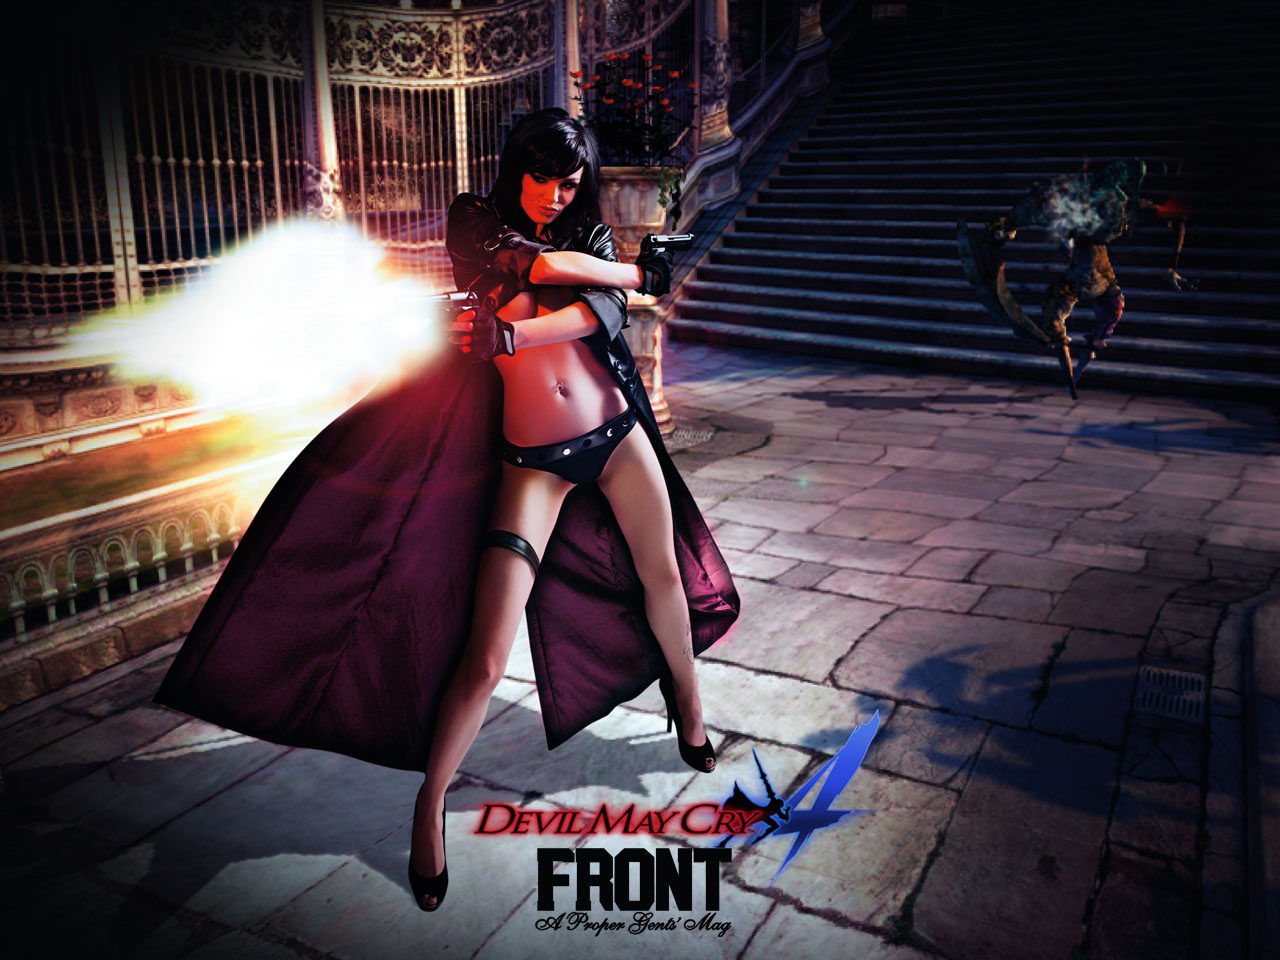 Devil may cry lady sex